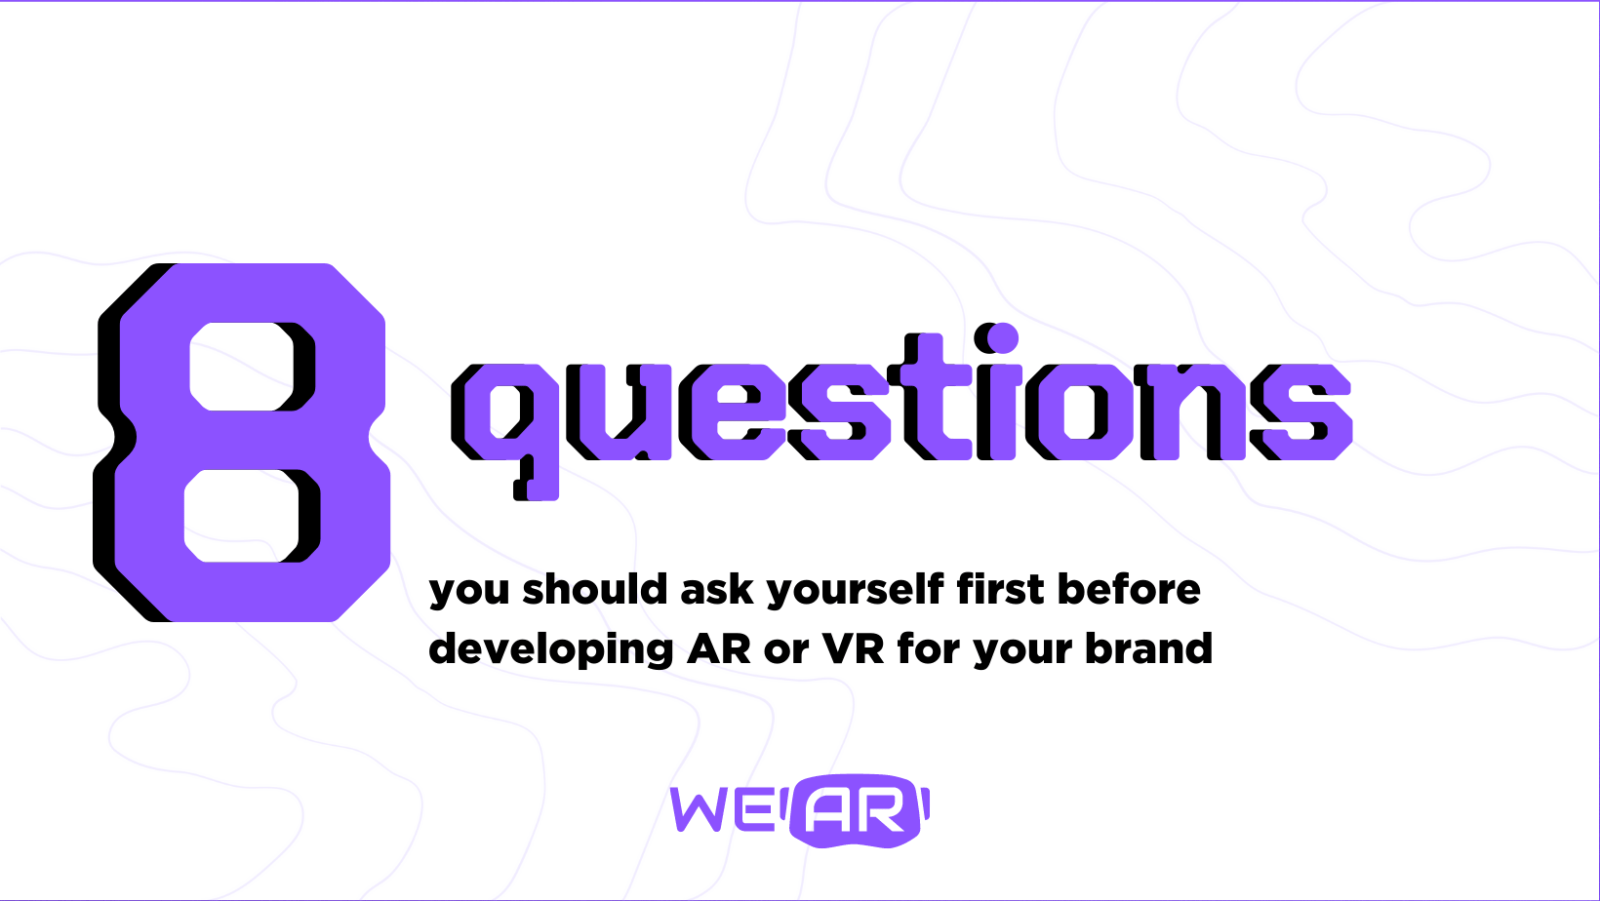 8 questions you should ask yourself first when you think of developing AR or VR for your brand?